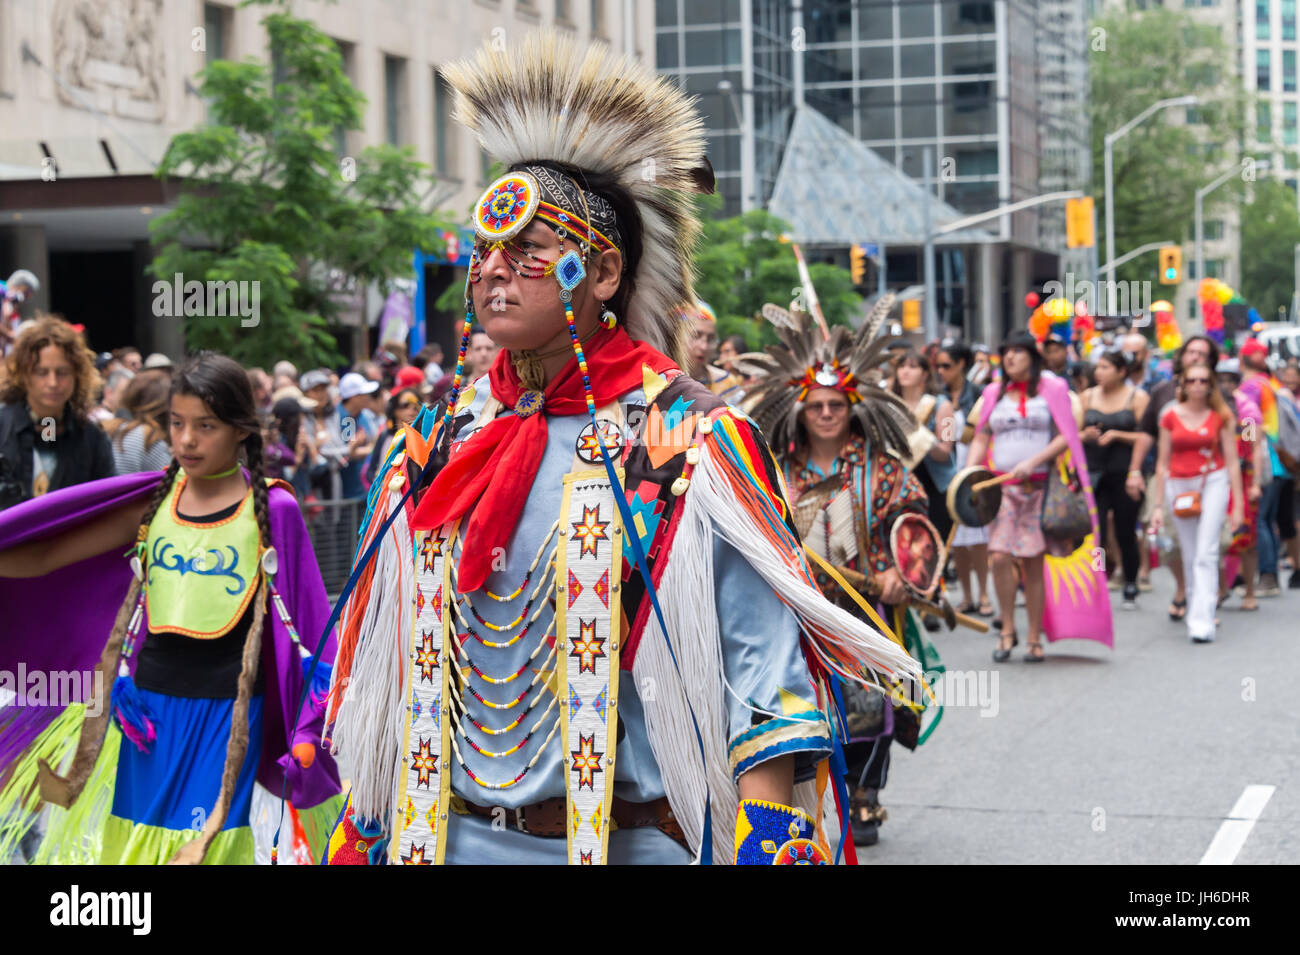 Toronto, Canada - 25 June 2017: First Nations people attend Toronto Gay Pride - Stock Image